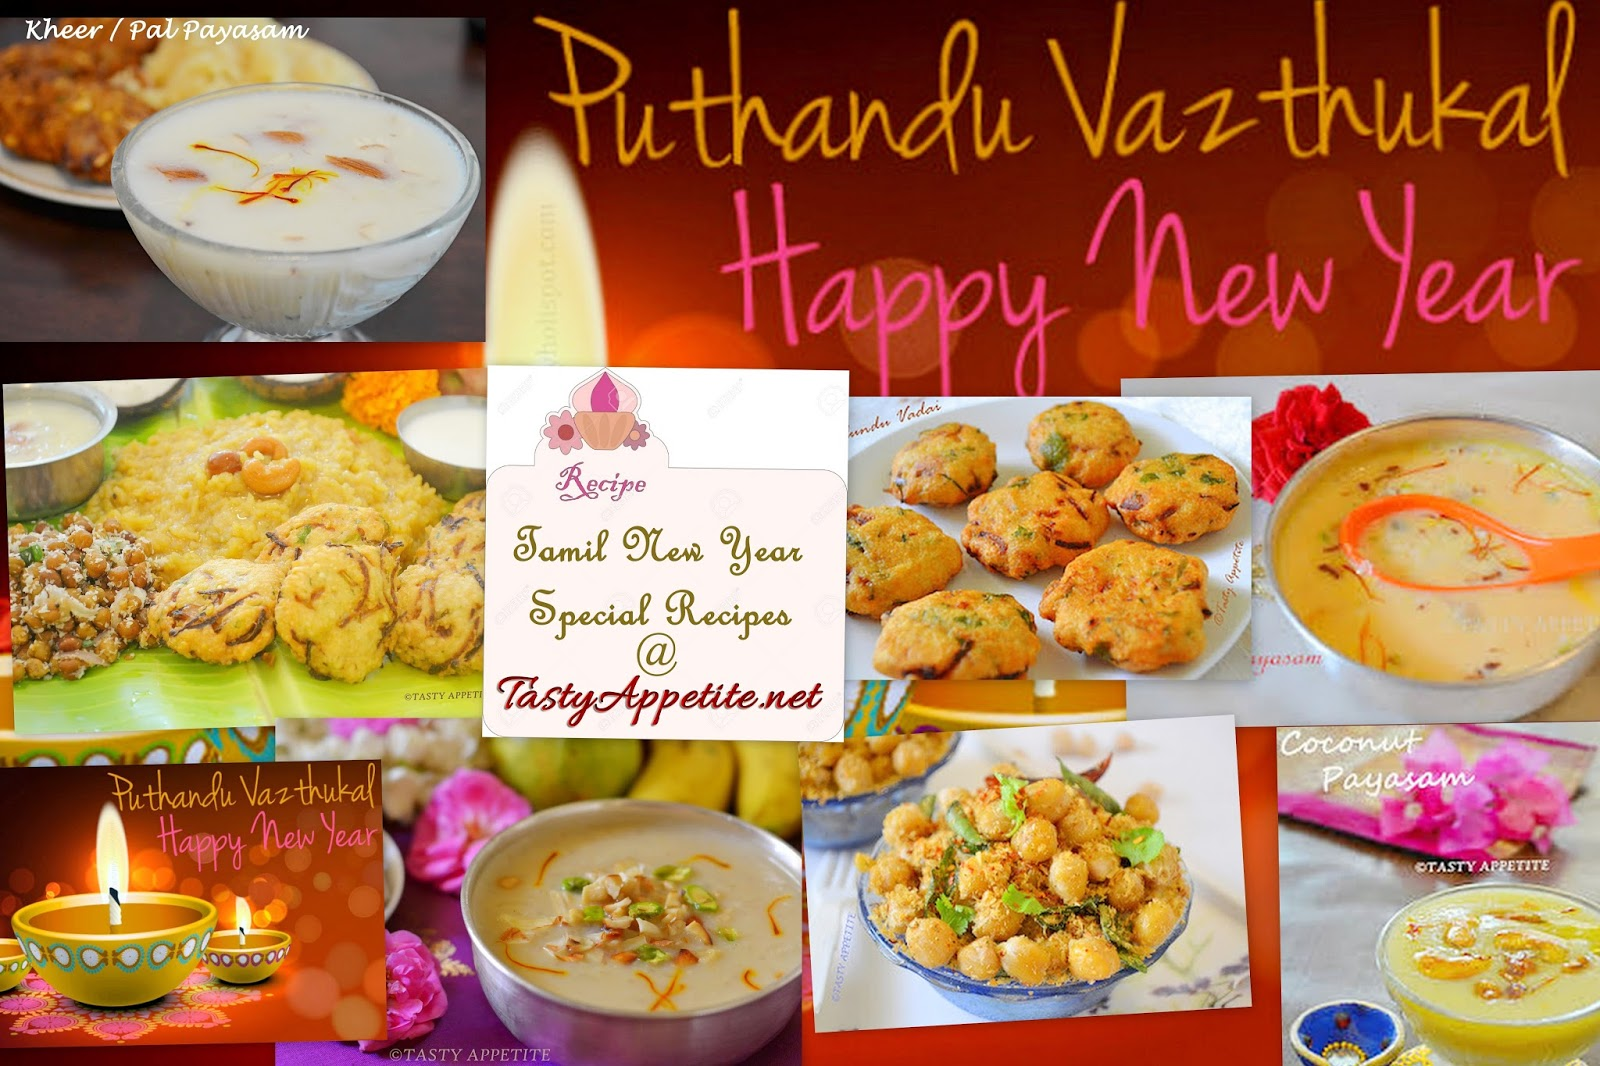 Tamil new year recipes vishu recipes happy tamil new year for more video recipes subscribe here tamil new year also known as varusha pirappu is round the corner forumfinder Images